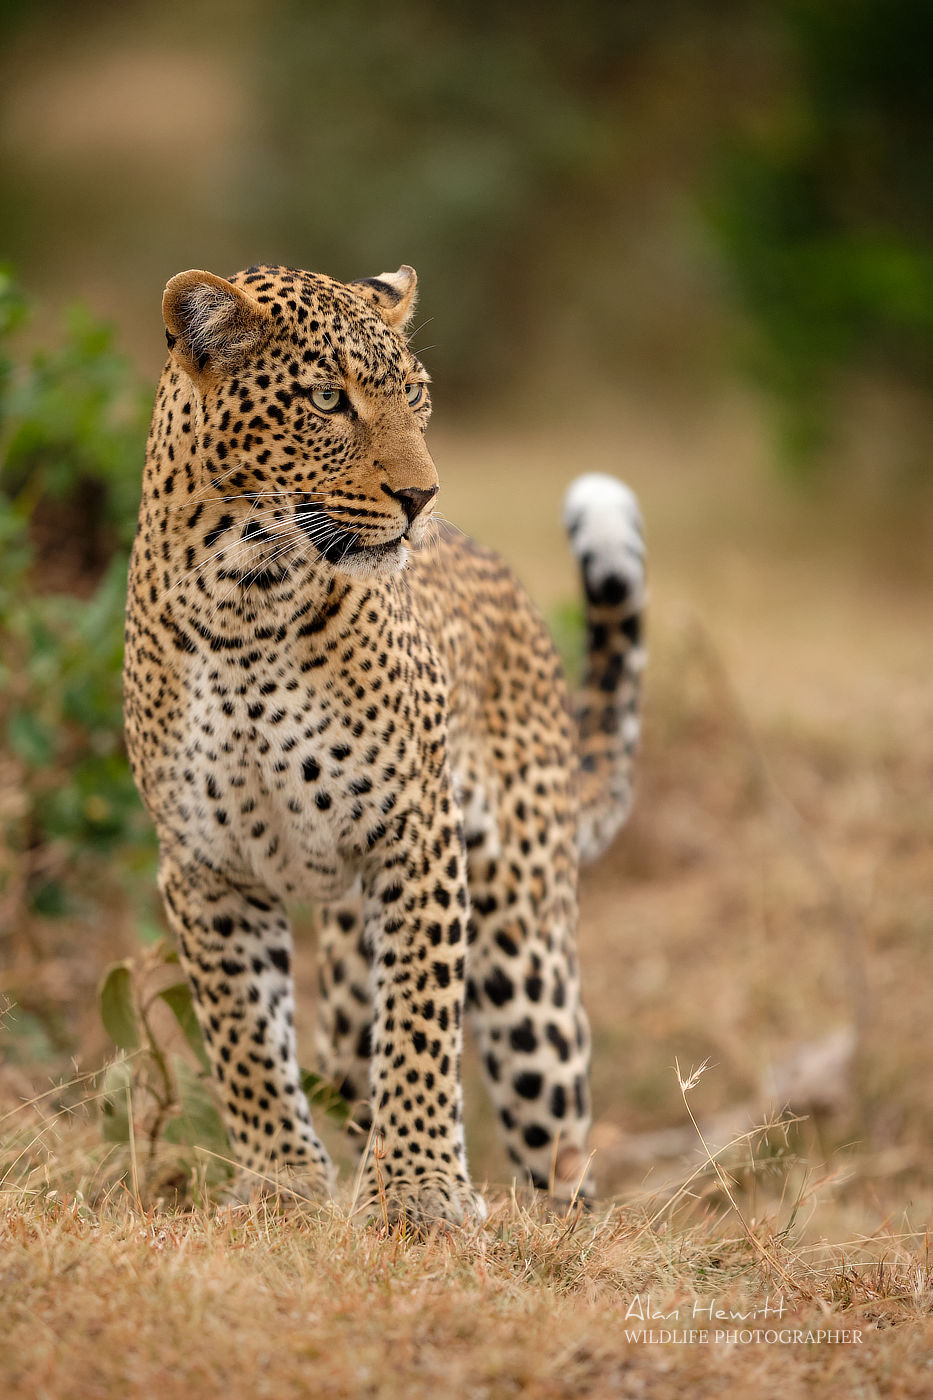 Female Leopard, Ol Choro Conservancy. Photographed with the Fujifilm X-H1 & Fujinon 200mm f/2.